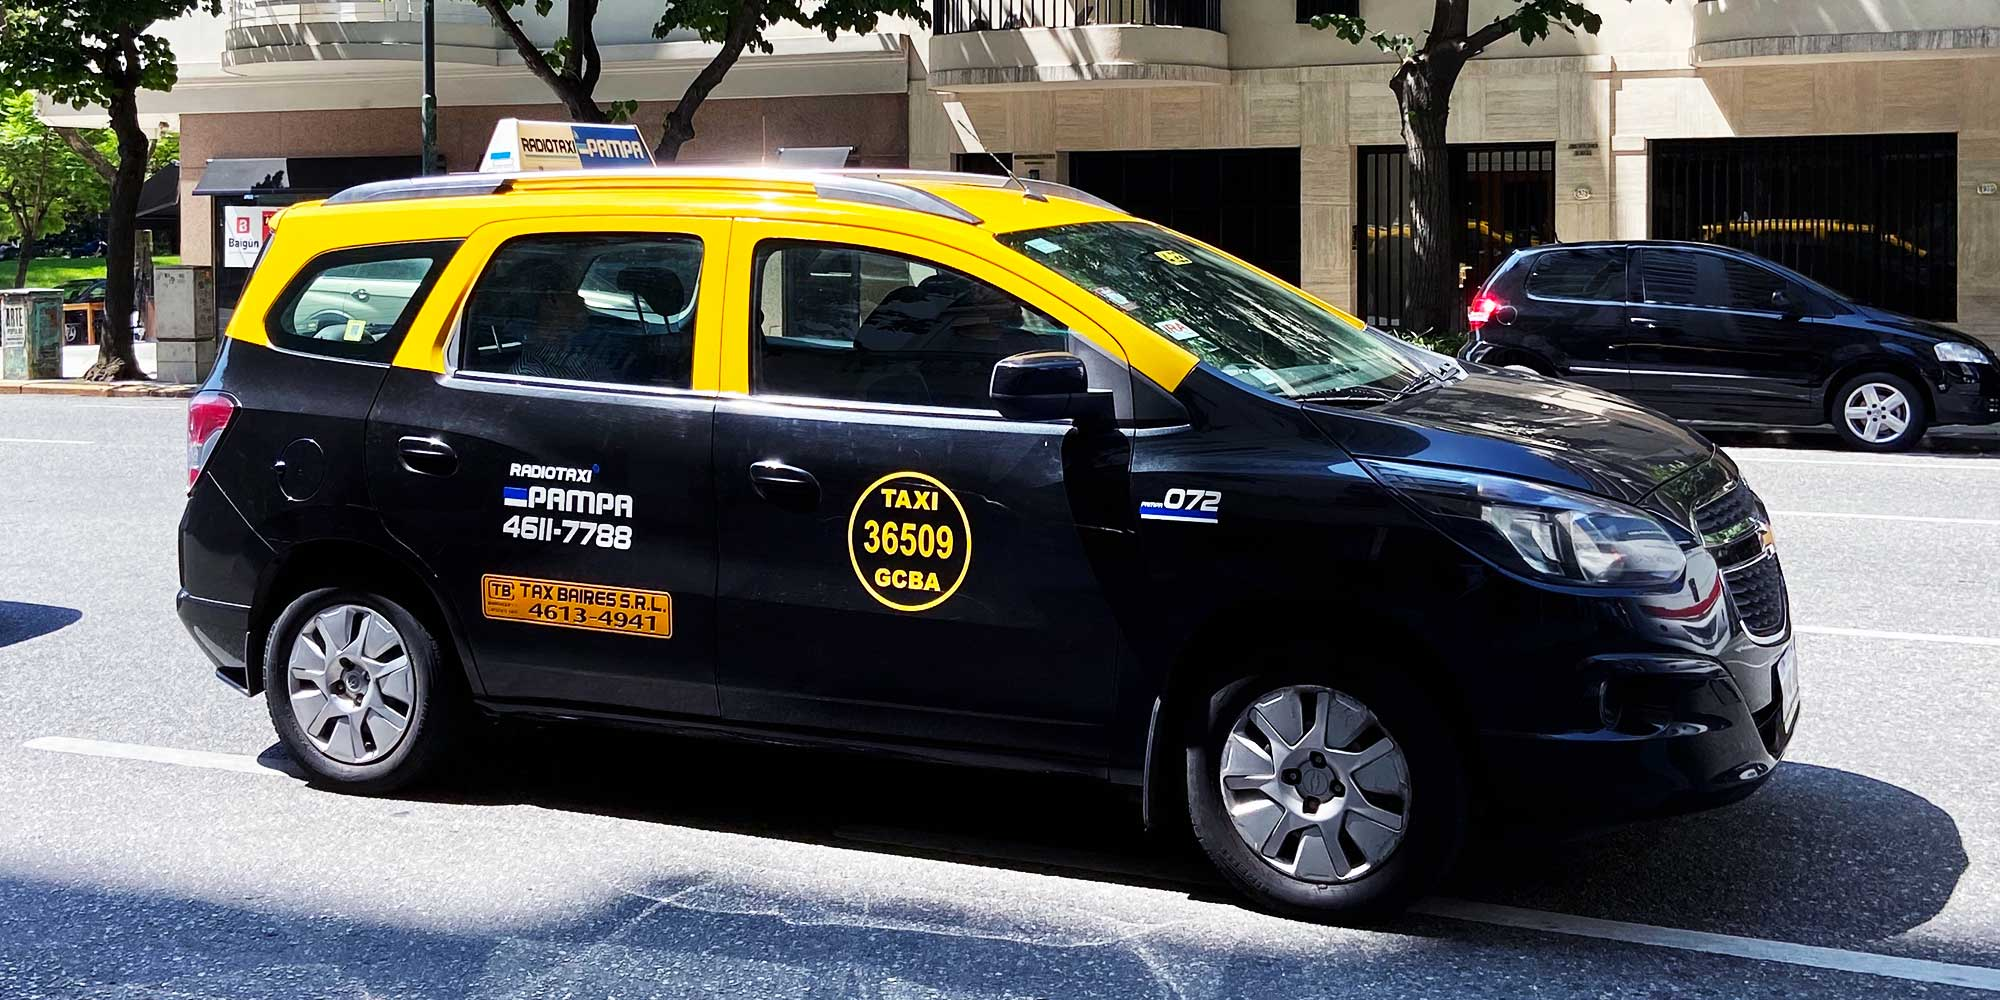 Taxi in Buenos Aires painted yellow and black